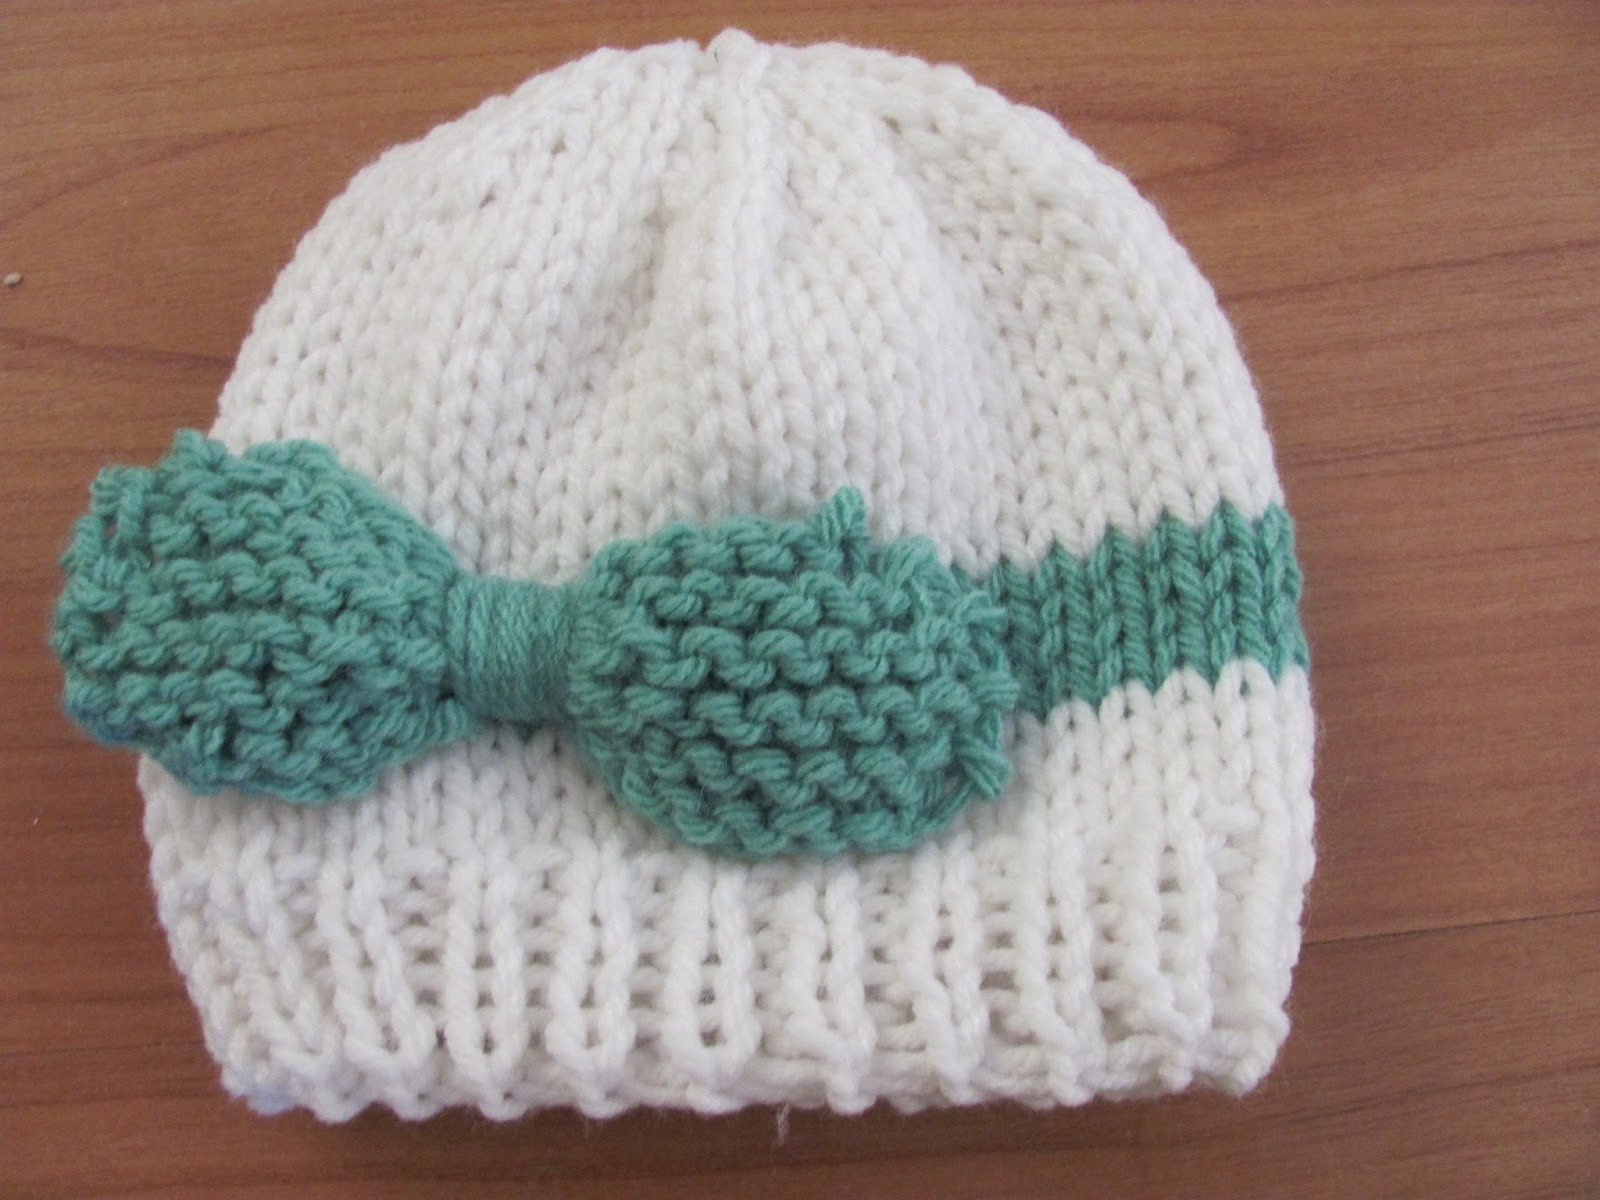 Best Of Twenty something Granny Knitted Baby Bow Hat Infant Knit Hat Of Beautiful 48 Photos Infant Knit Hat